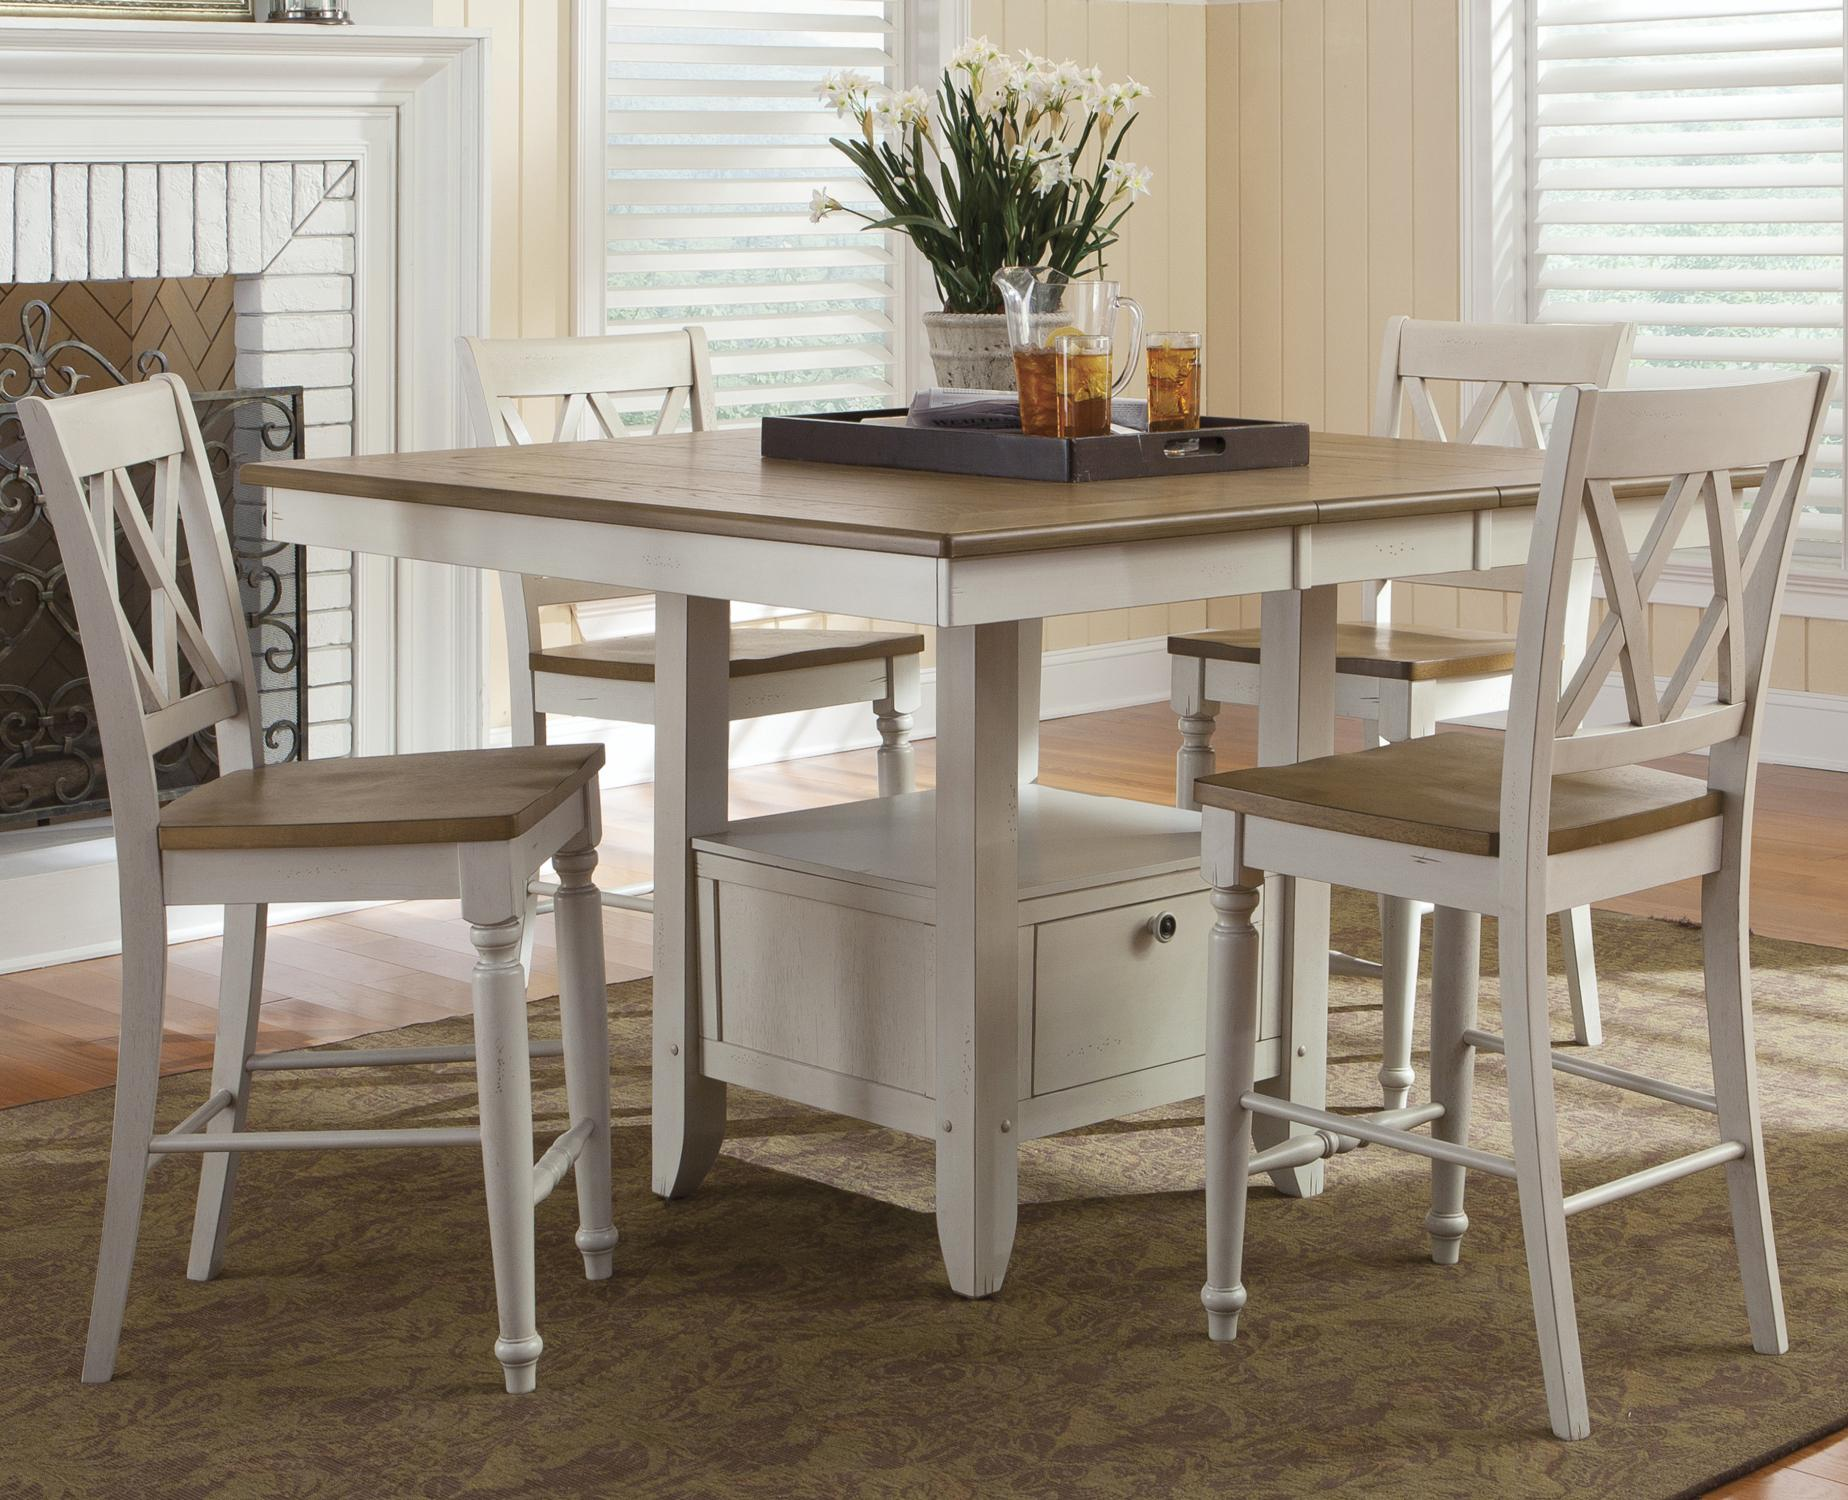 5 Piece Gathering Table and Chairs Set